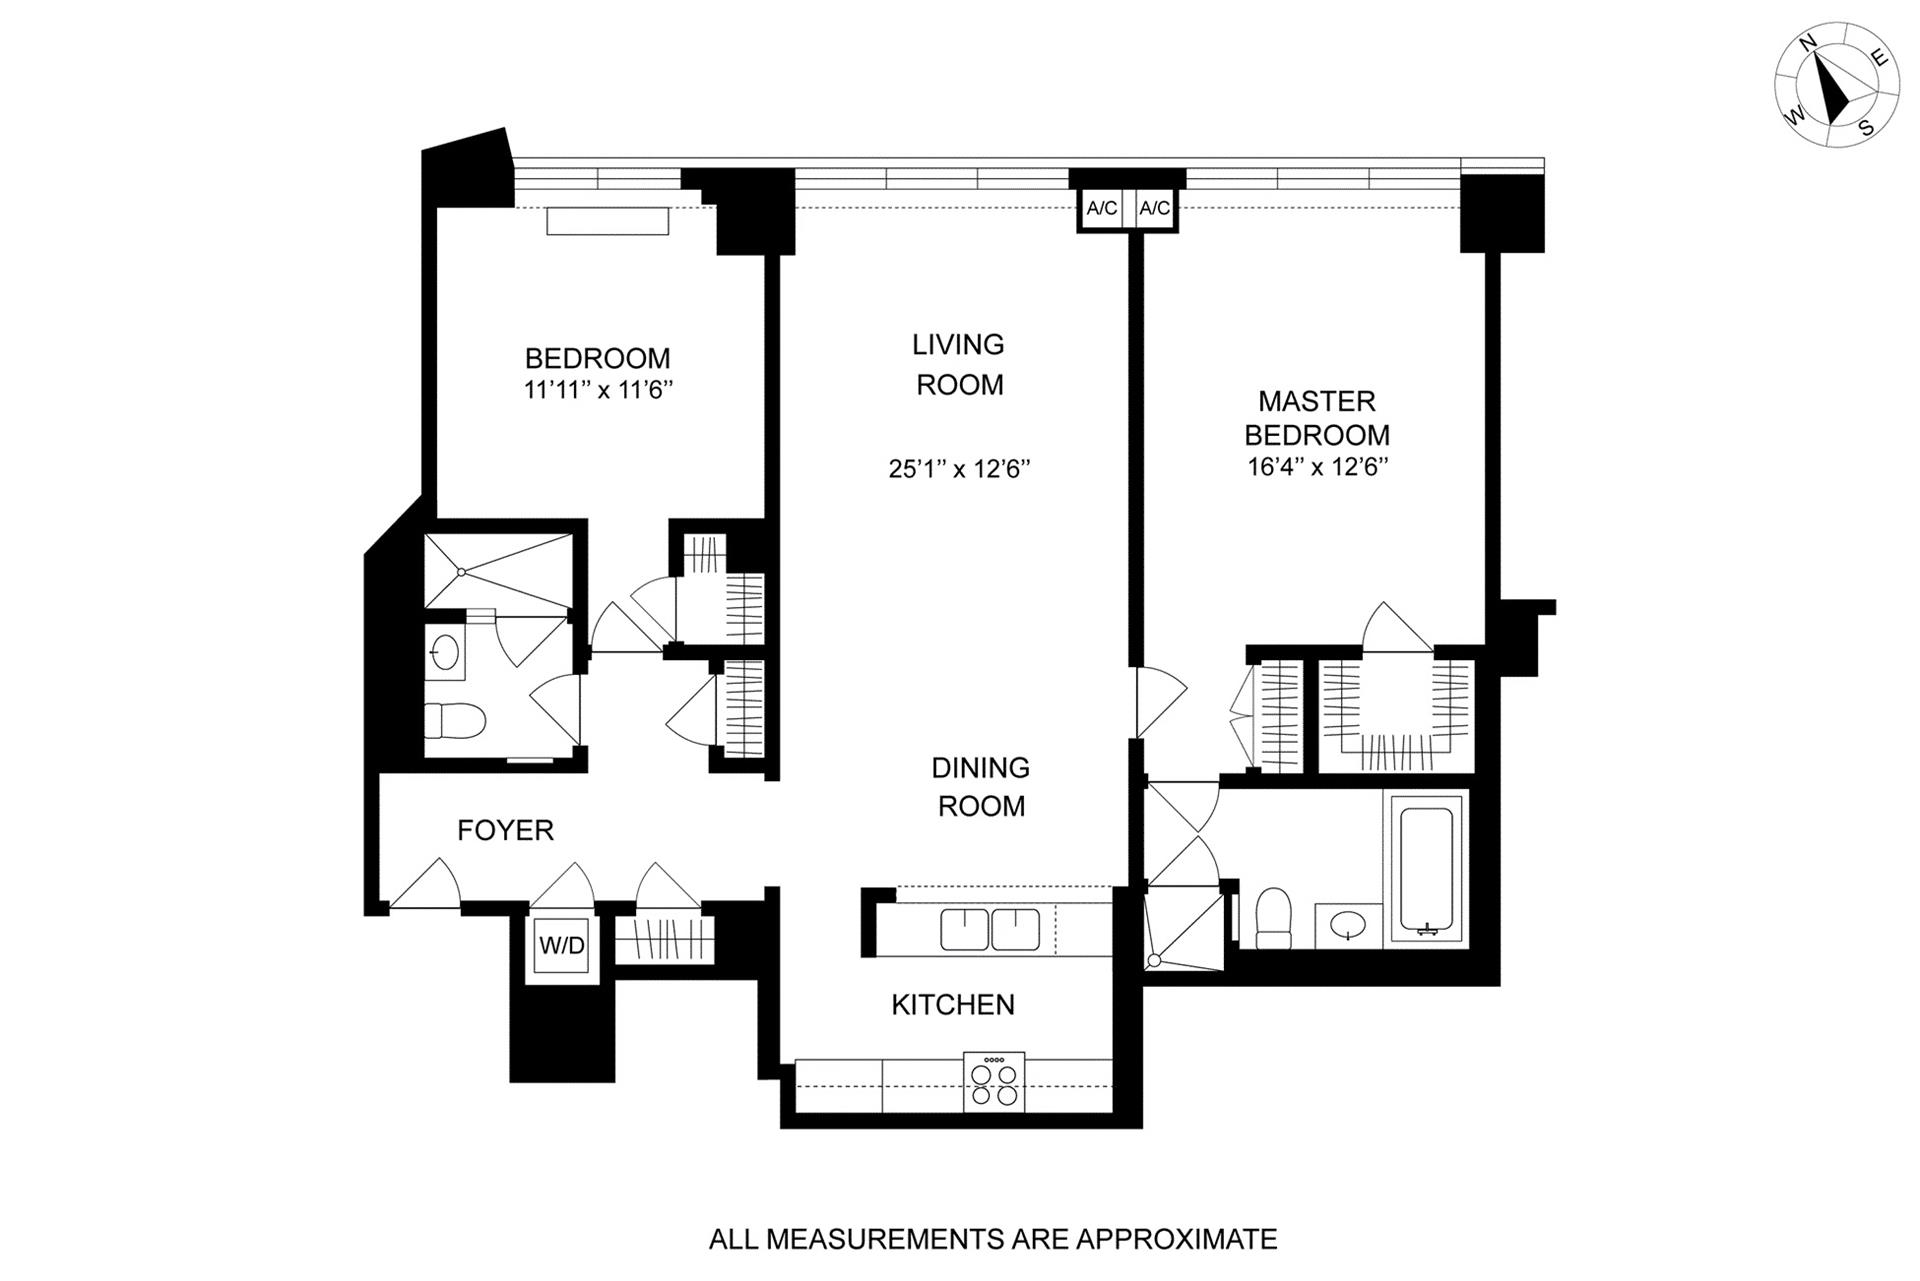 Floor plan of 1 Morton Square, 5AW - West Village - Meatpacking District, New York